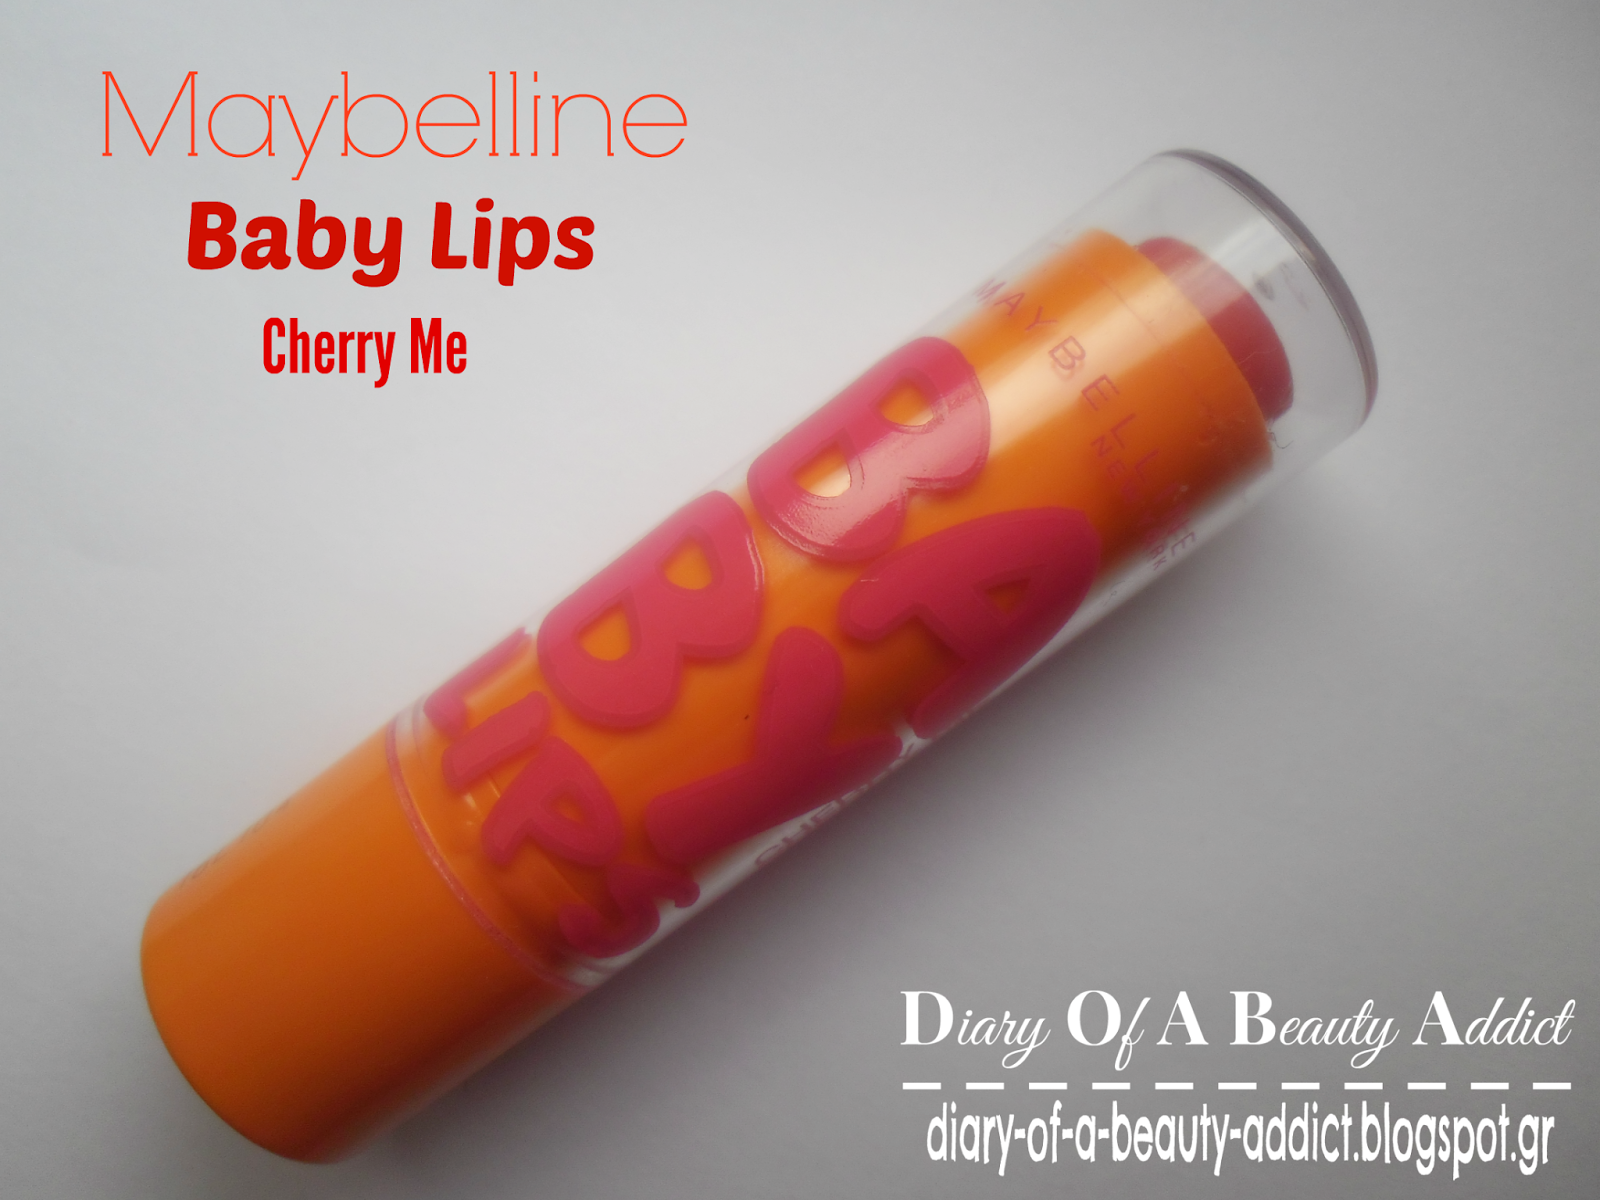 Maybelline Baby Lips Cherry Me : Review